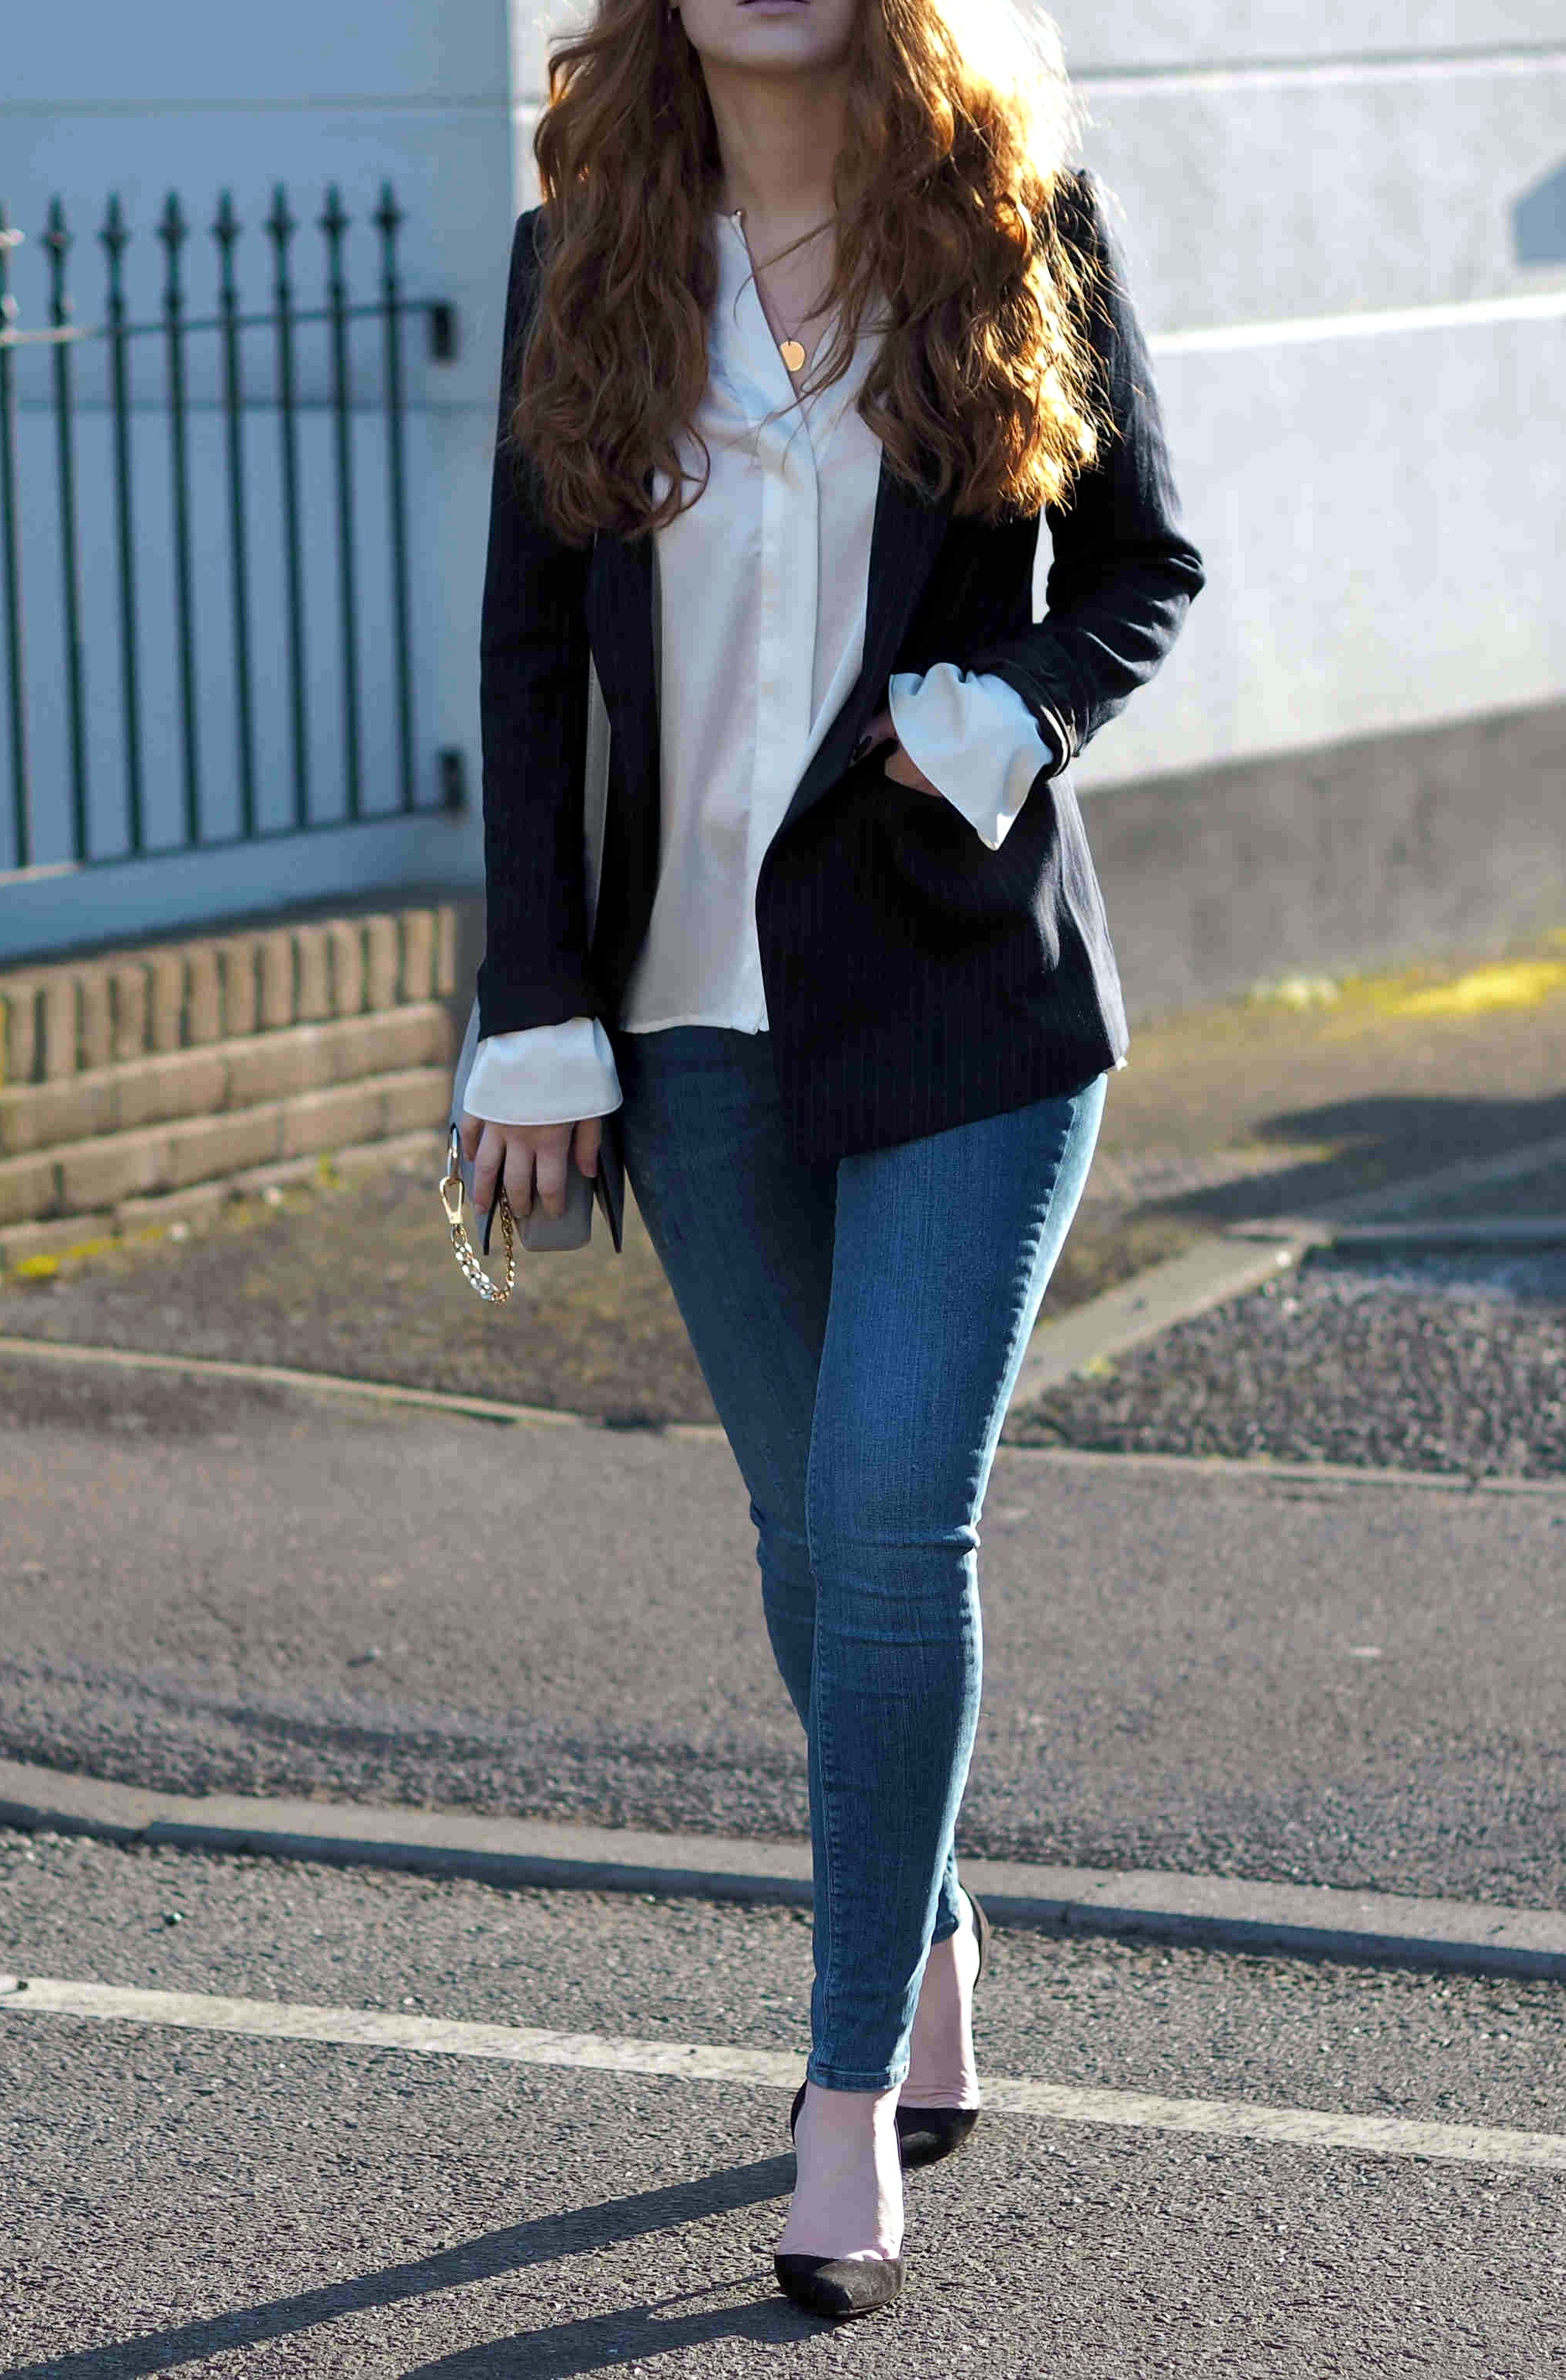 h&m pinstripe navy blazer with zara satin white blouse mango heels and river island blue jeans smart casual outfit inspiration